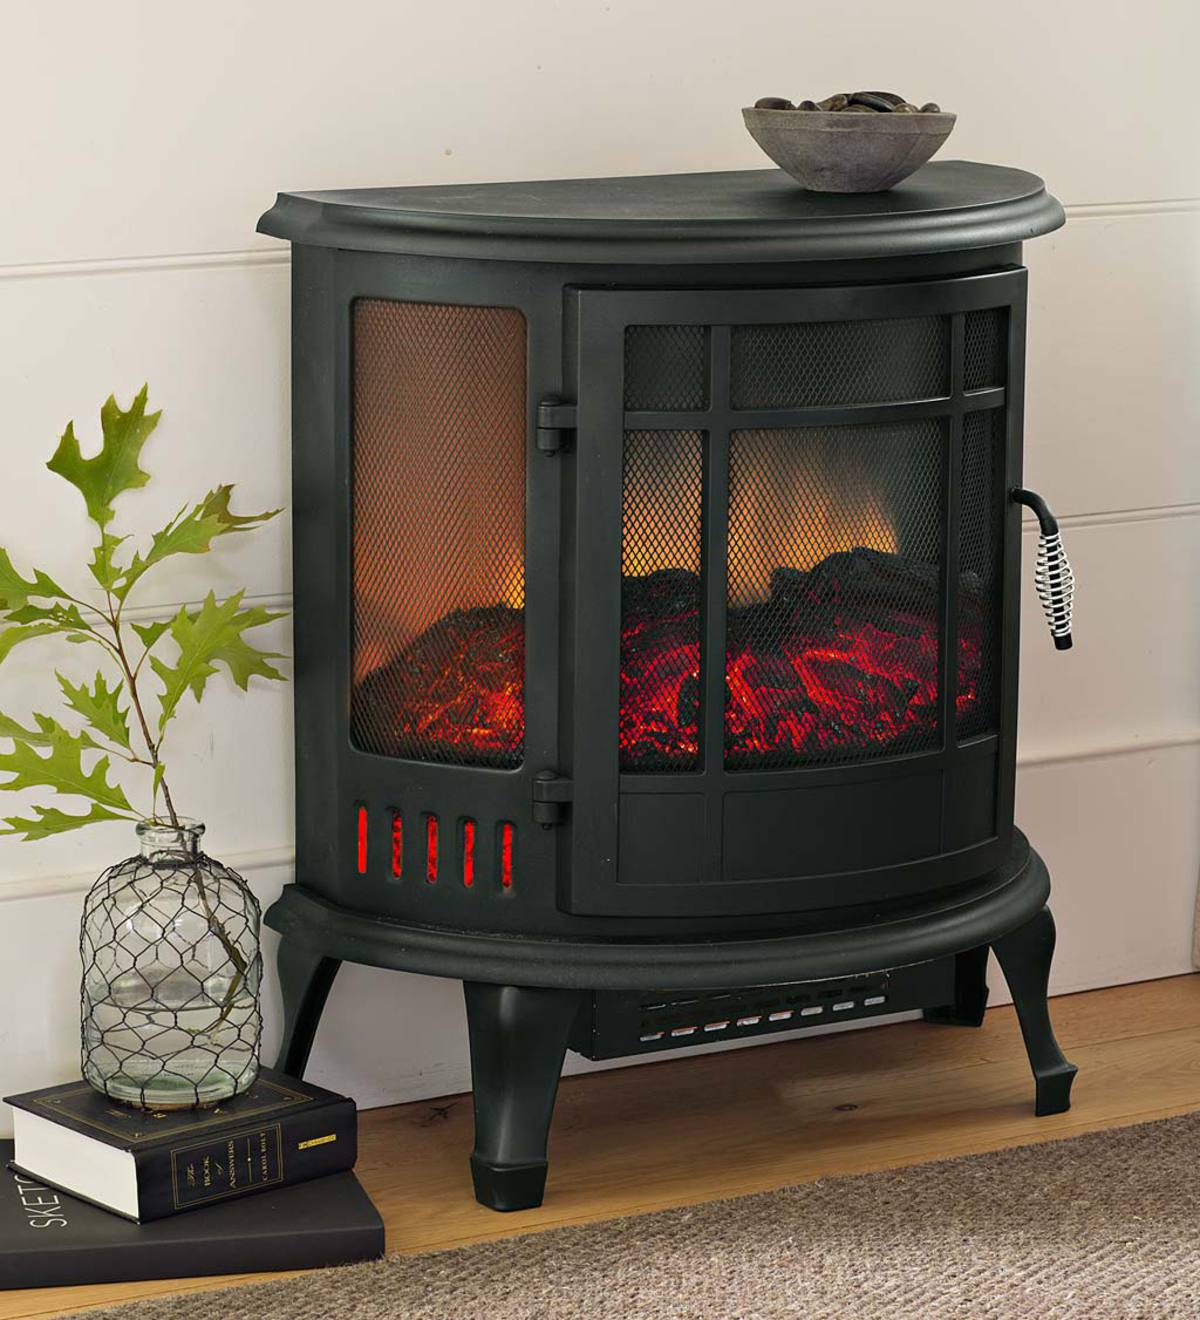 Curved Panoramic Electric Fireplace Stove Black Plowhearth